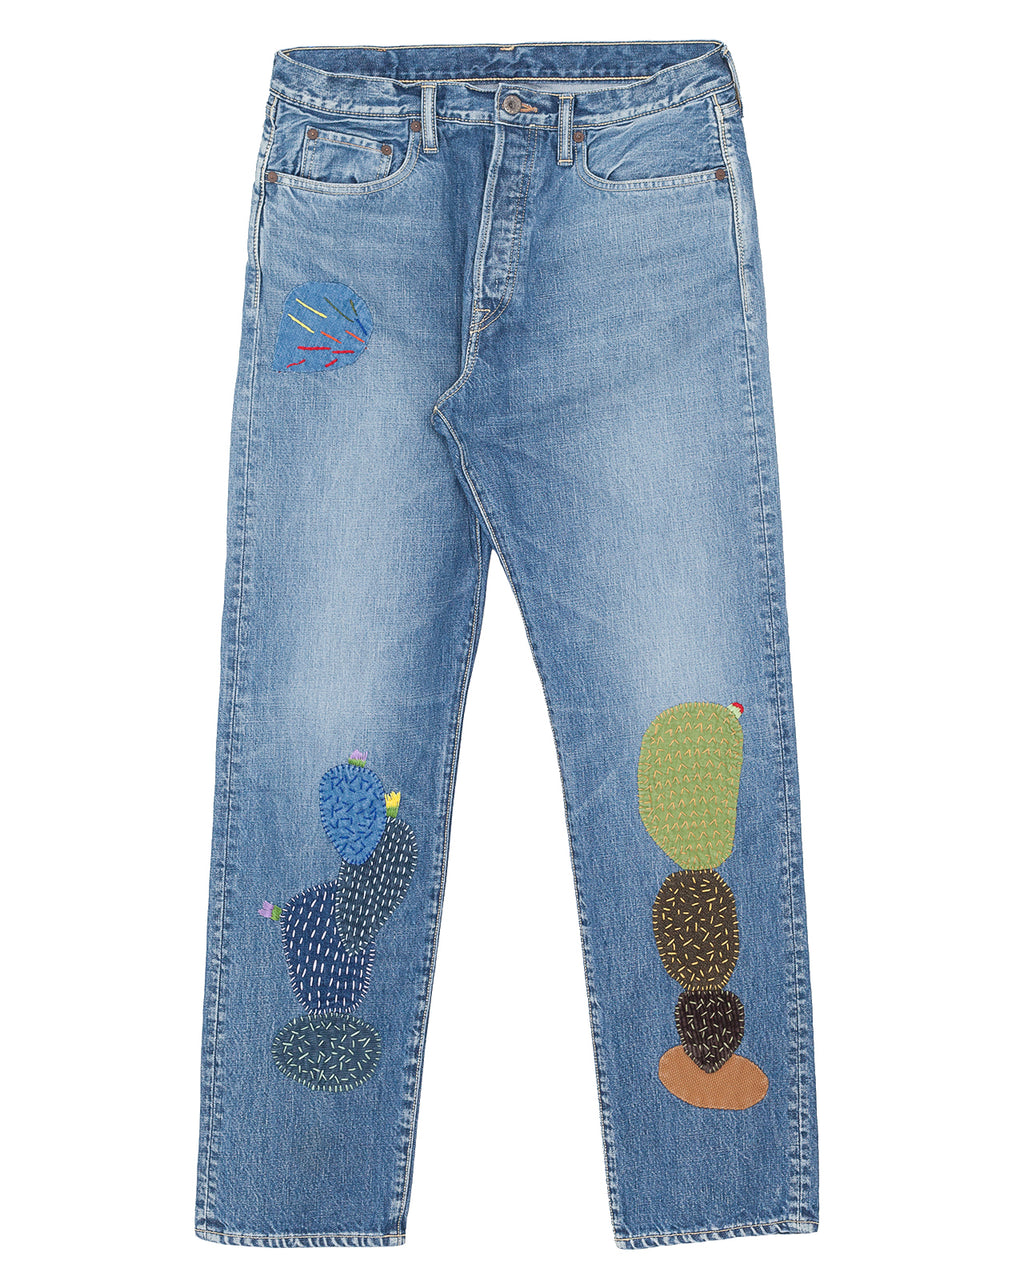 Kapital 14oz Denim 5P Monkey Cisco, Cactus Embroidery